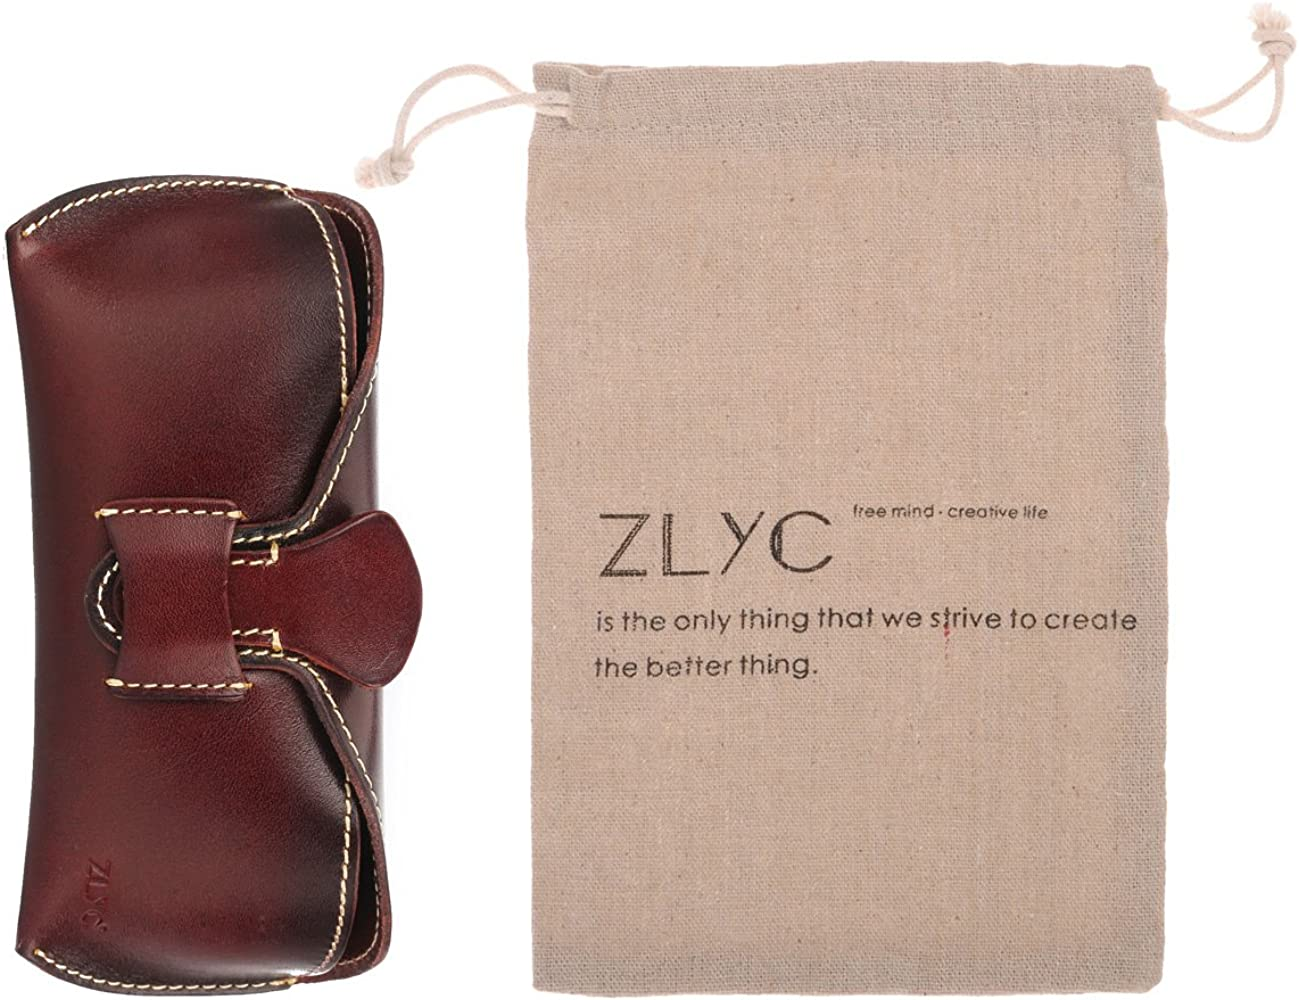 ZLYC Vegetable Tanned Leather Buckle Closure Hard Eyeglass Case Sunglasses Holder Coffee